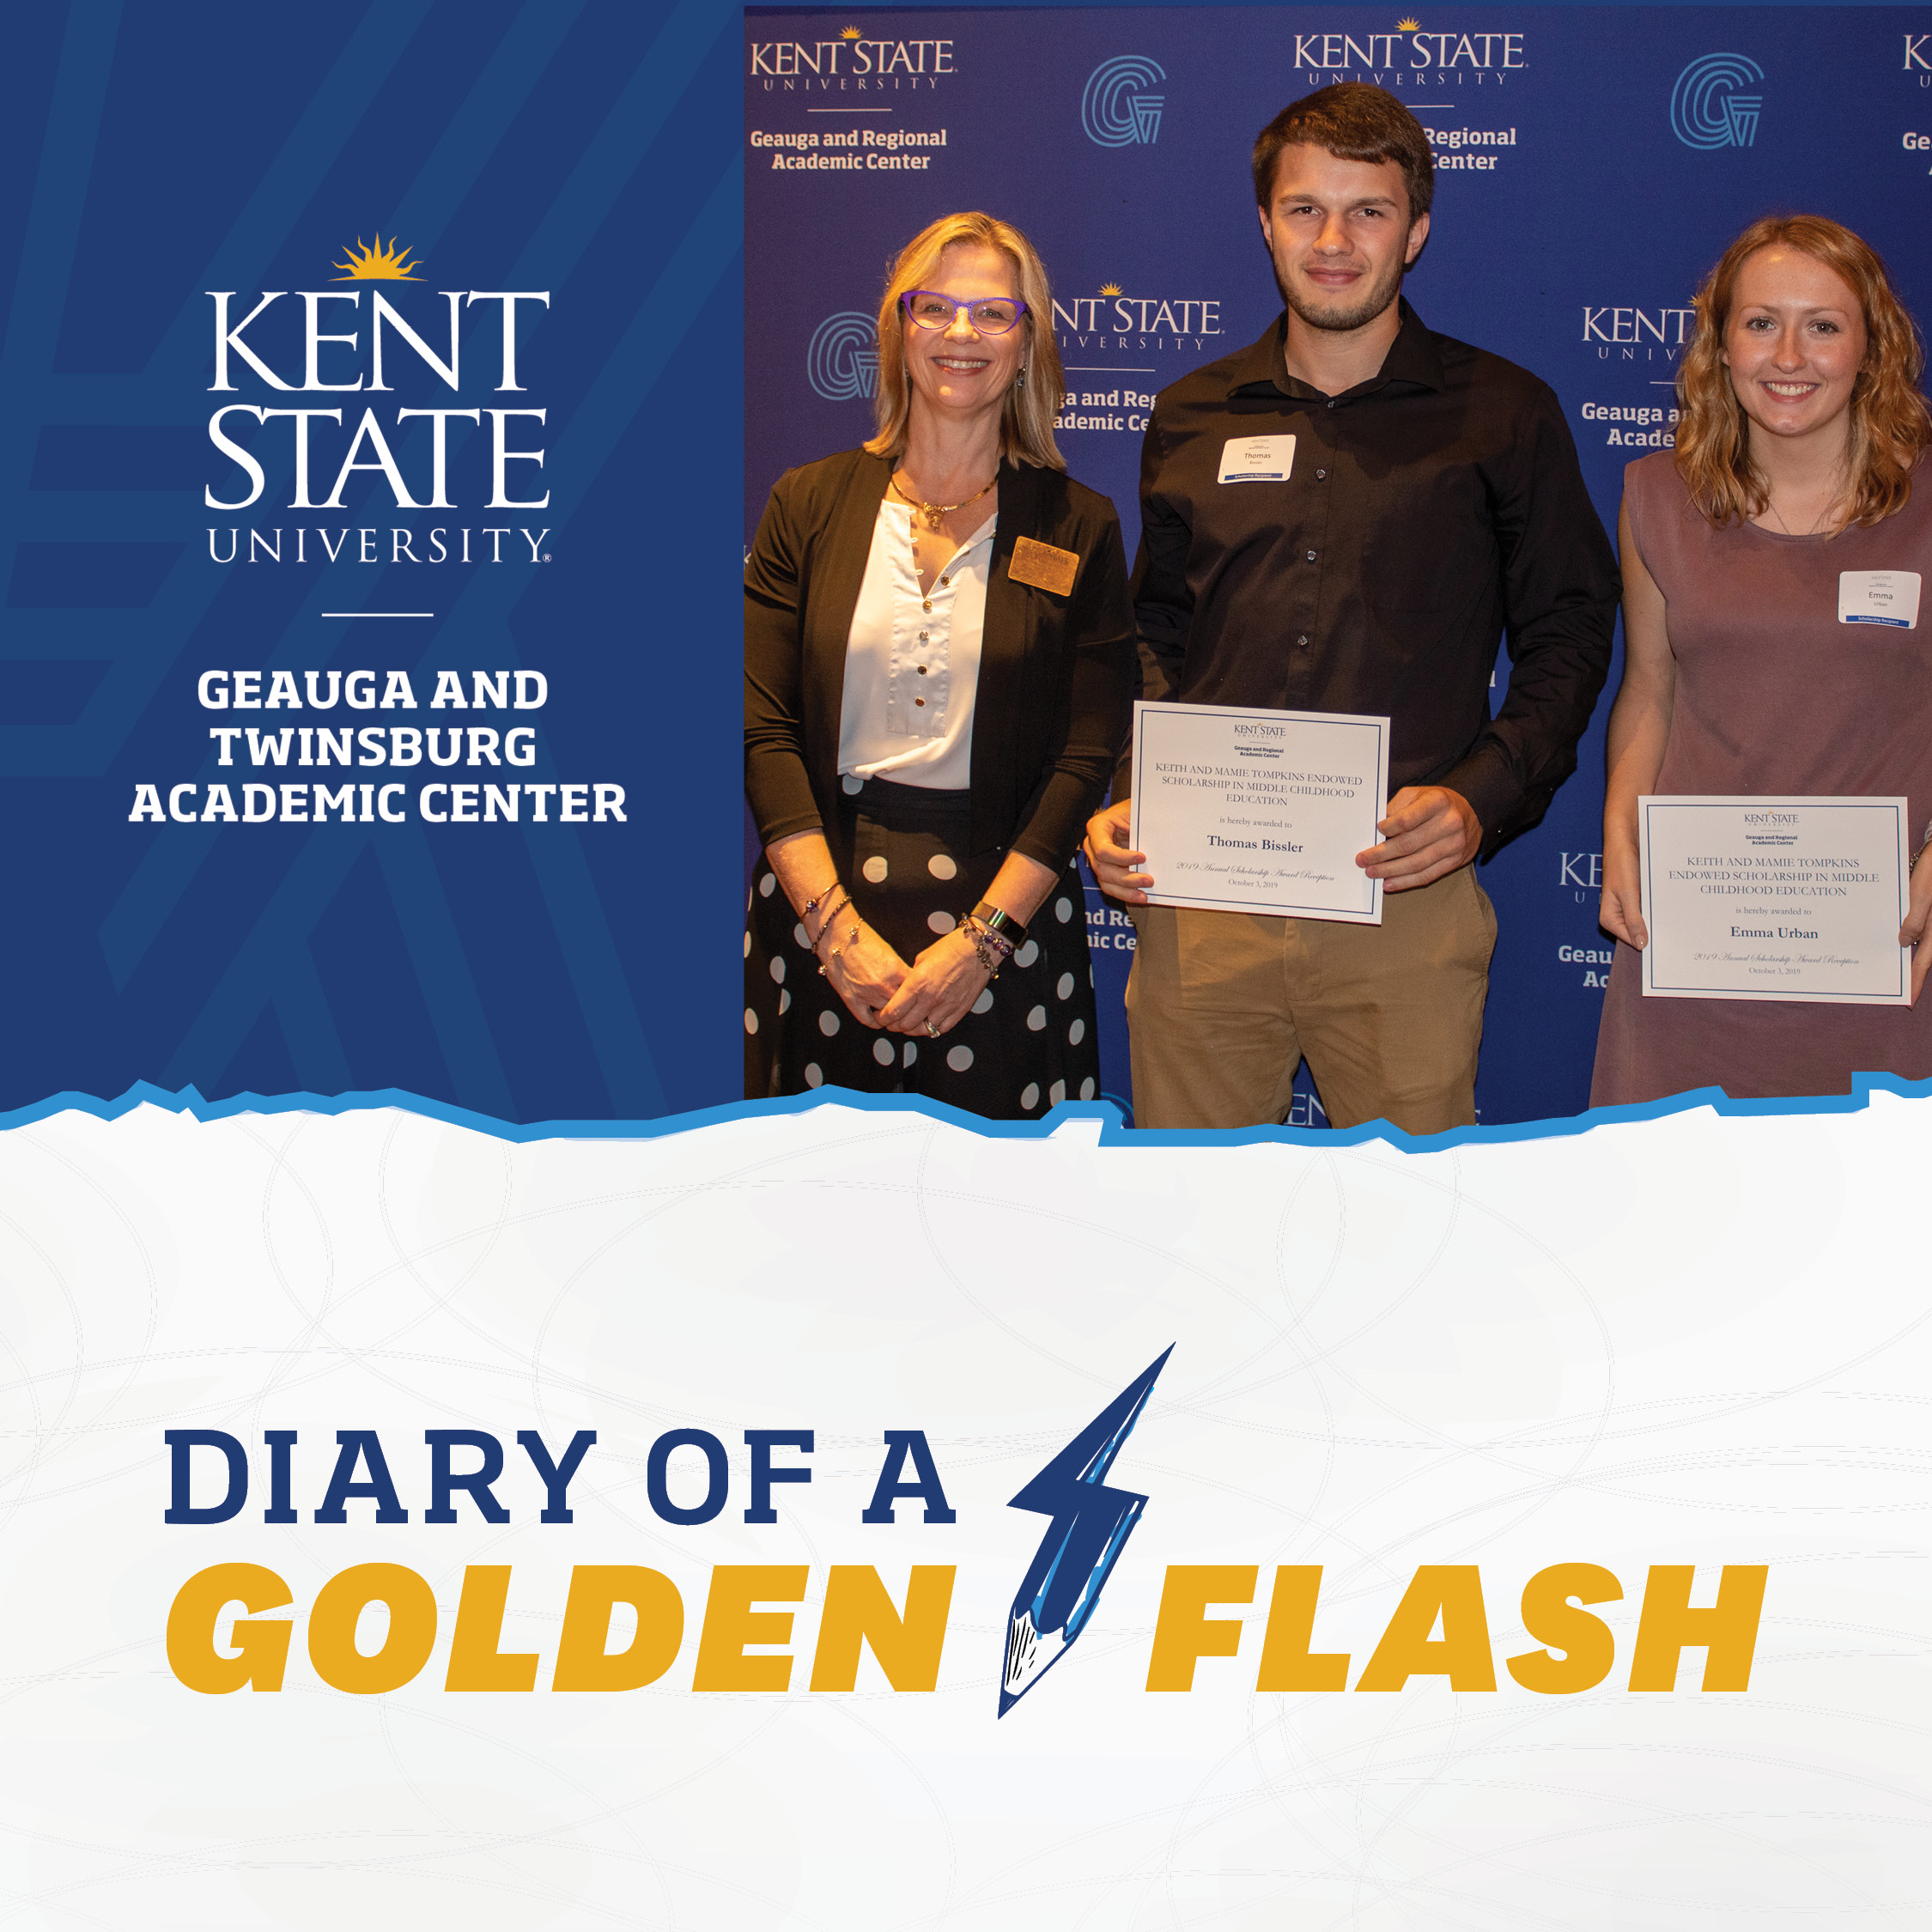 Diary of a Golden Flash Financial Aid